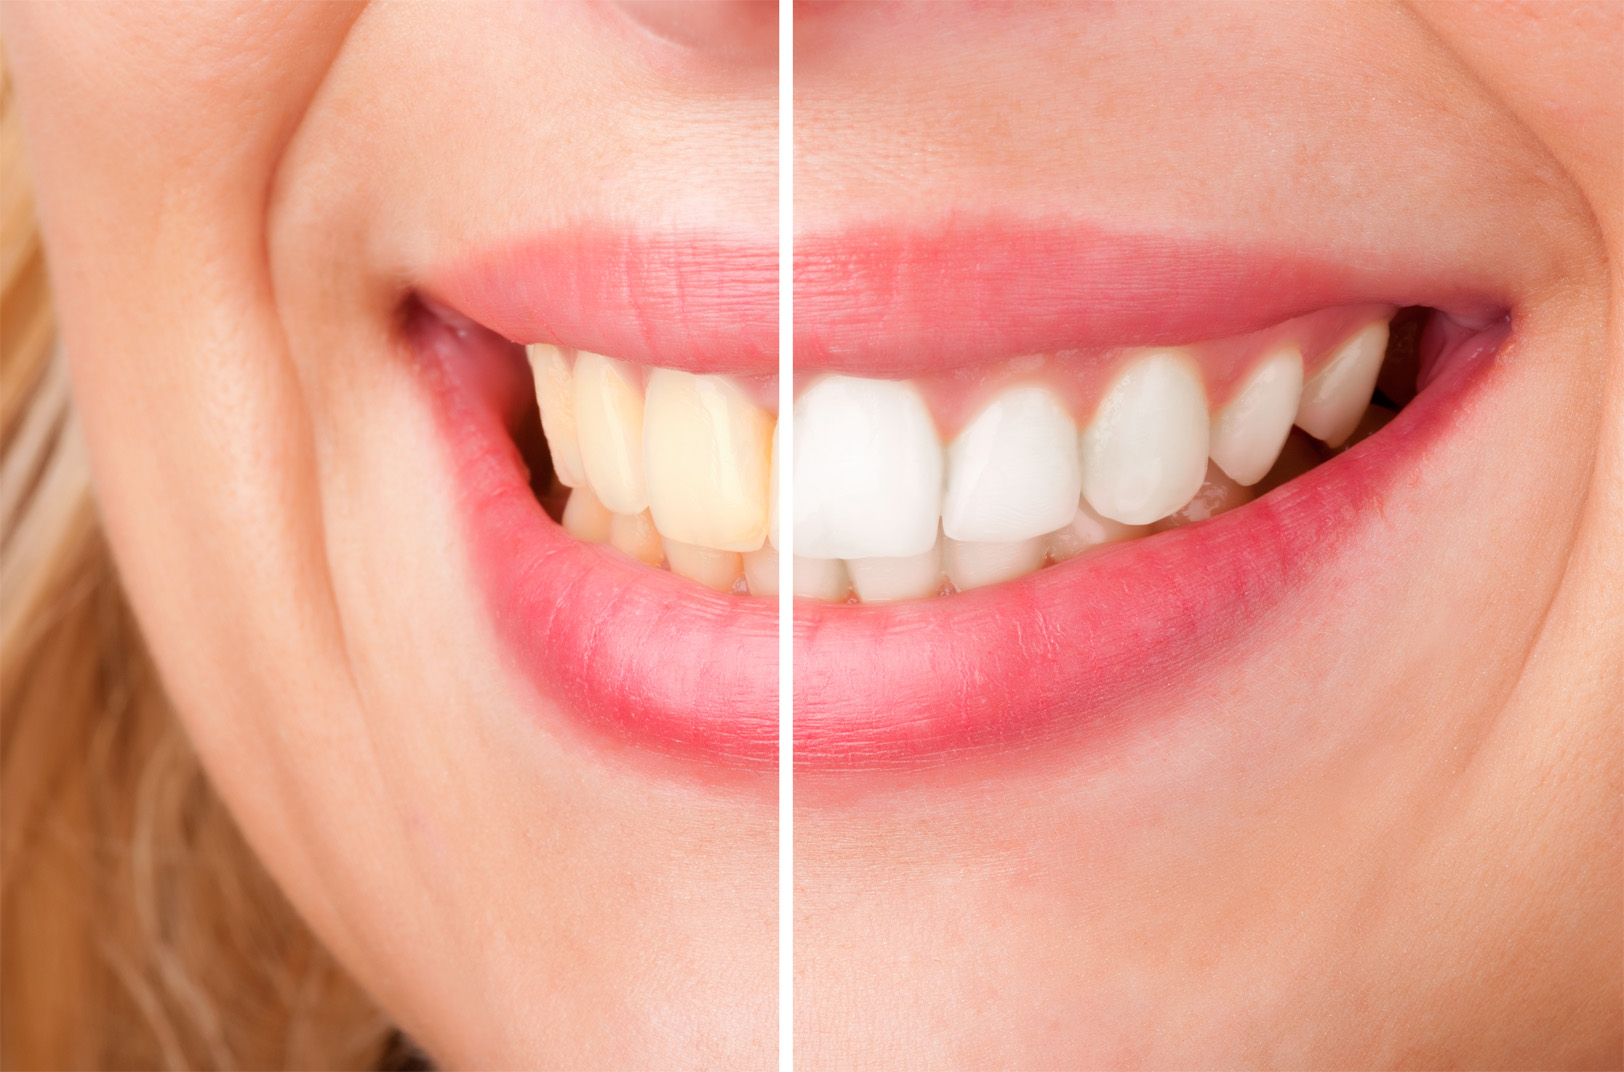 Tooth whitening at home, before and after